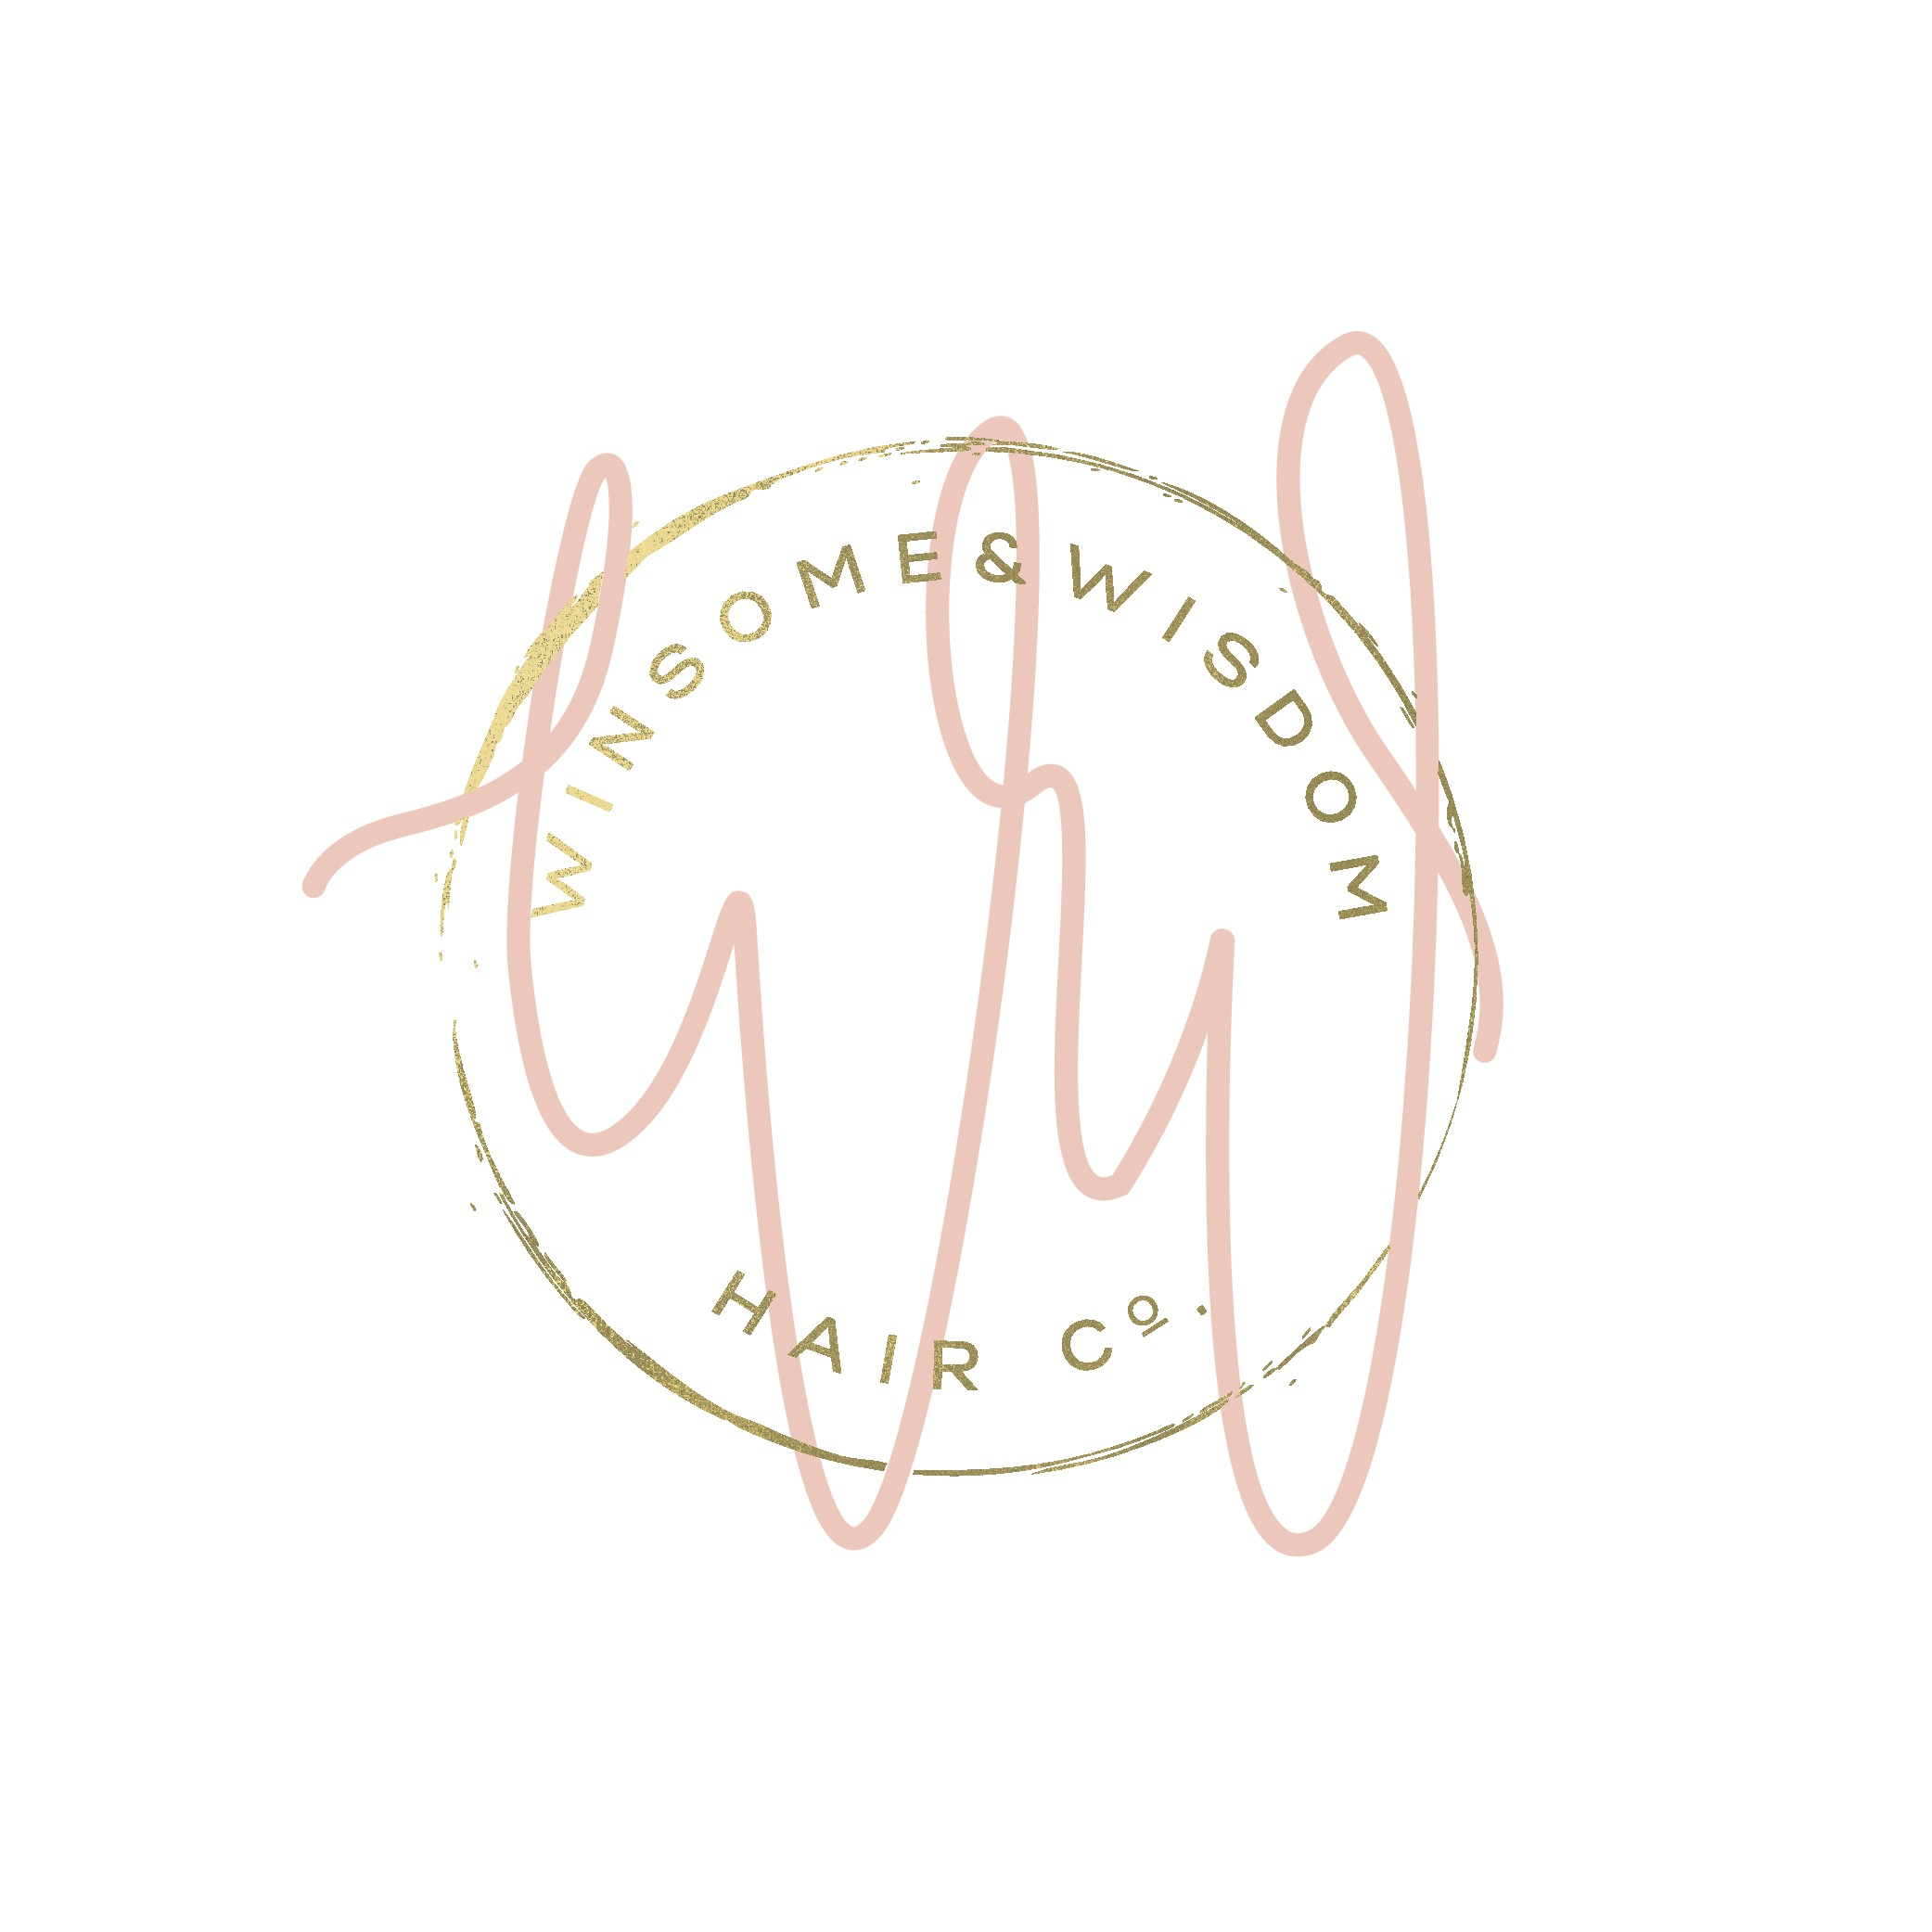 Design a whimsical and classy logo for Winsome & Wisdom Hair Co.